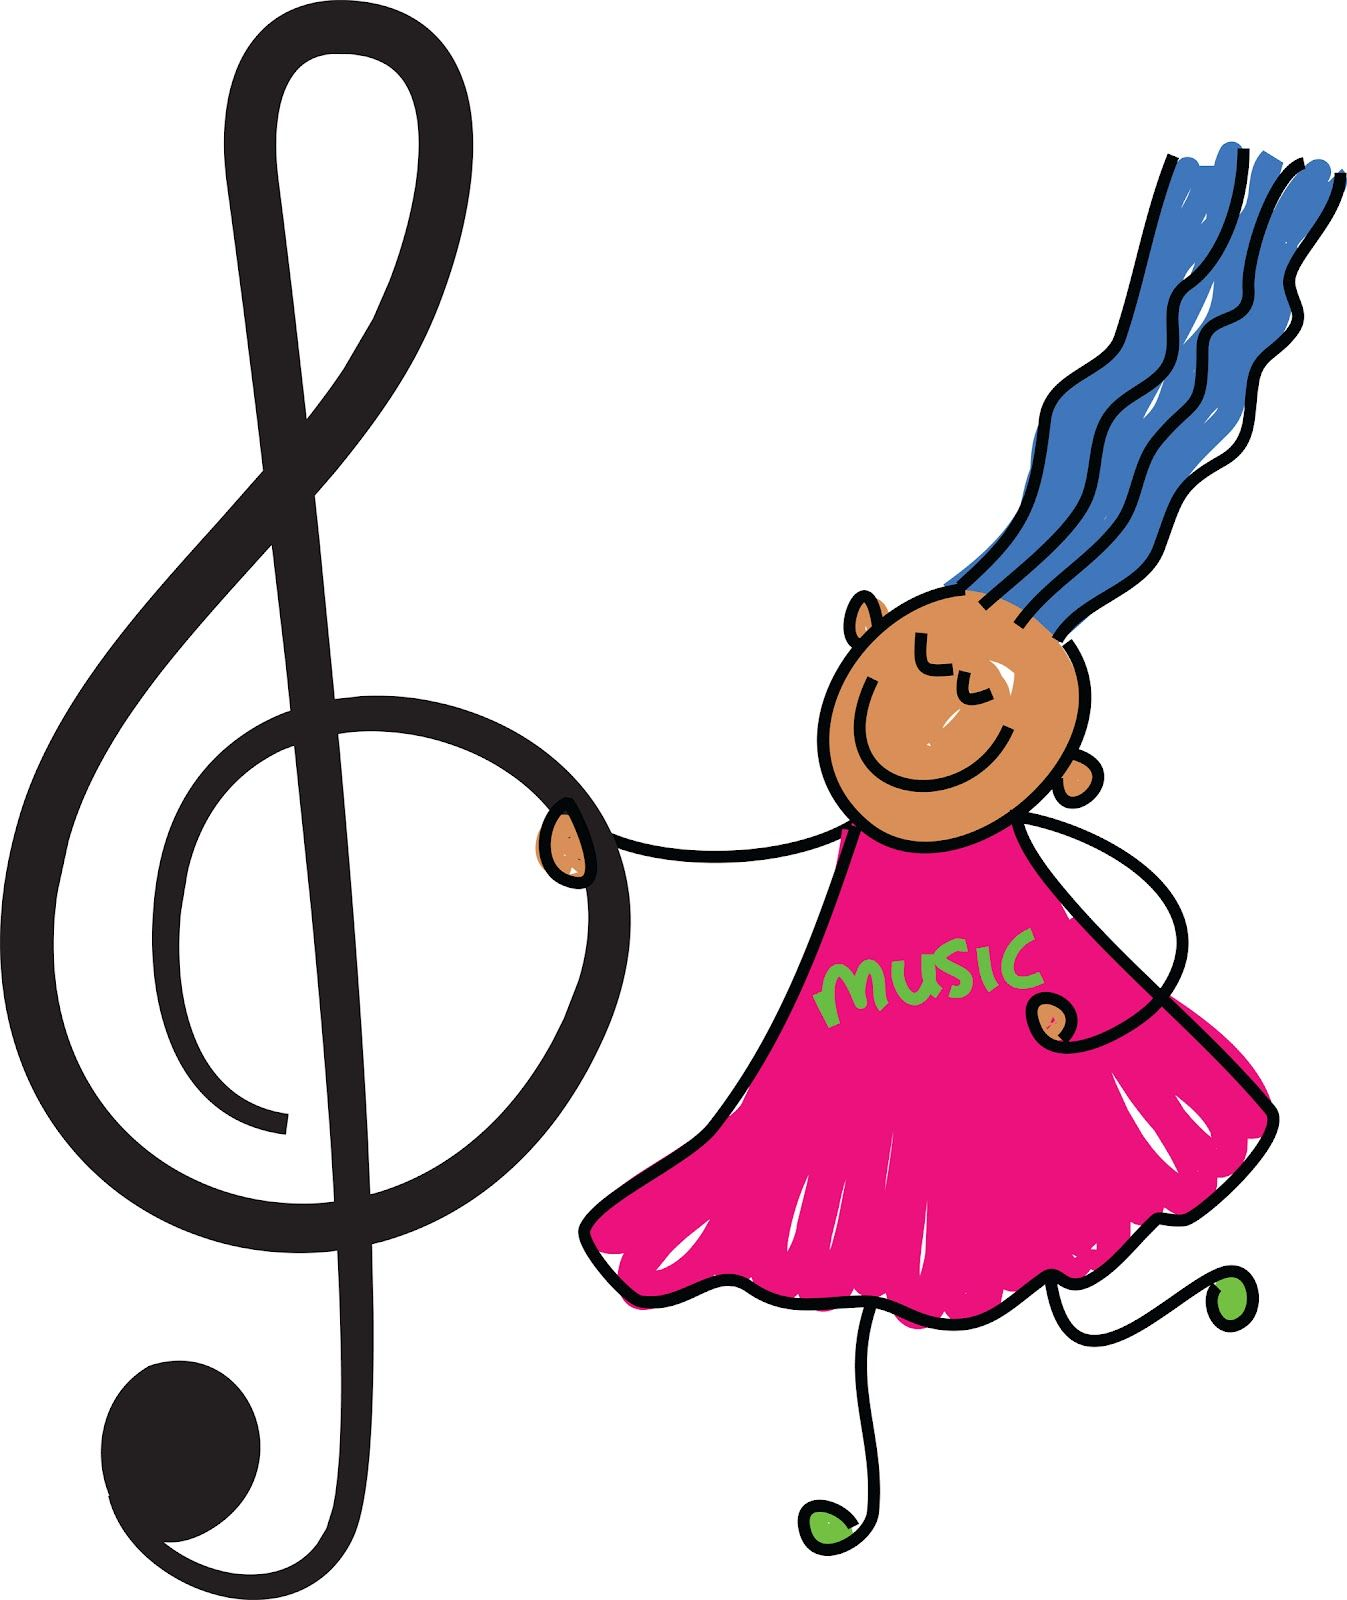 17 music staff clip art free school pinterest clip art free rh pinterest com